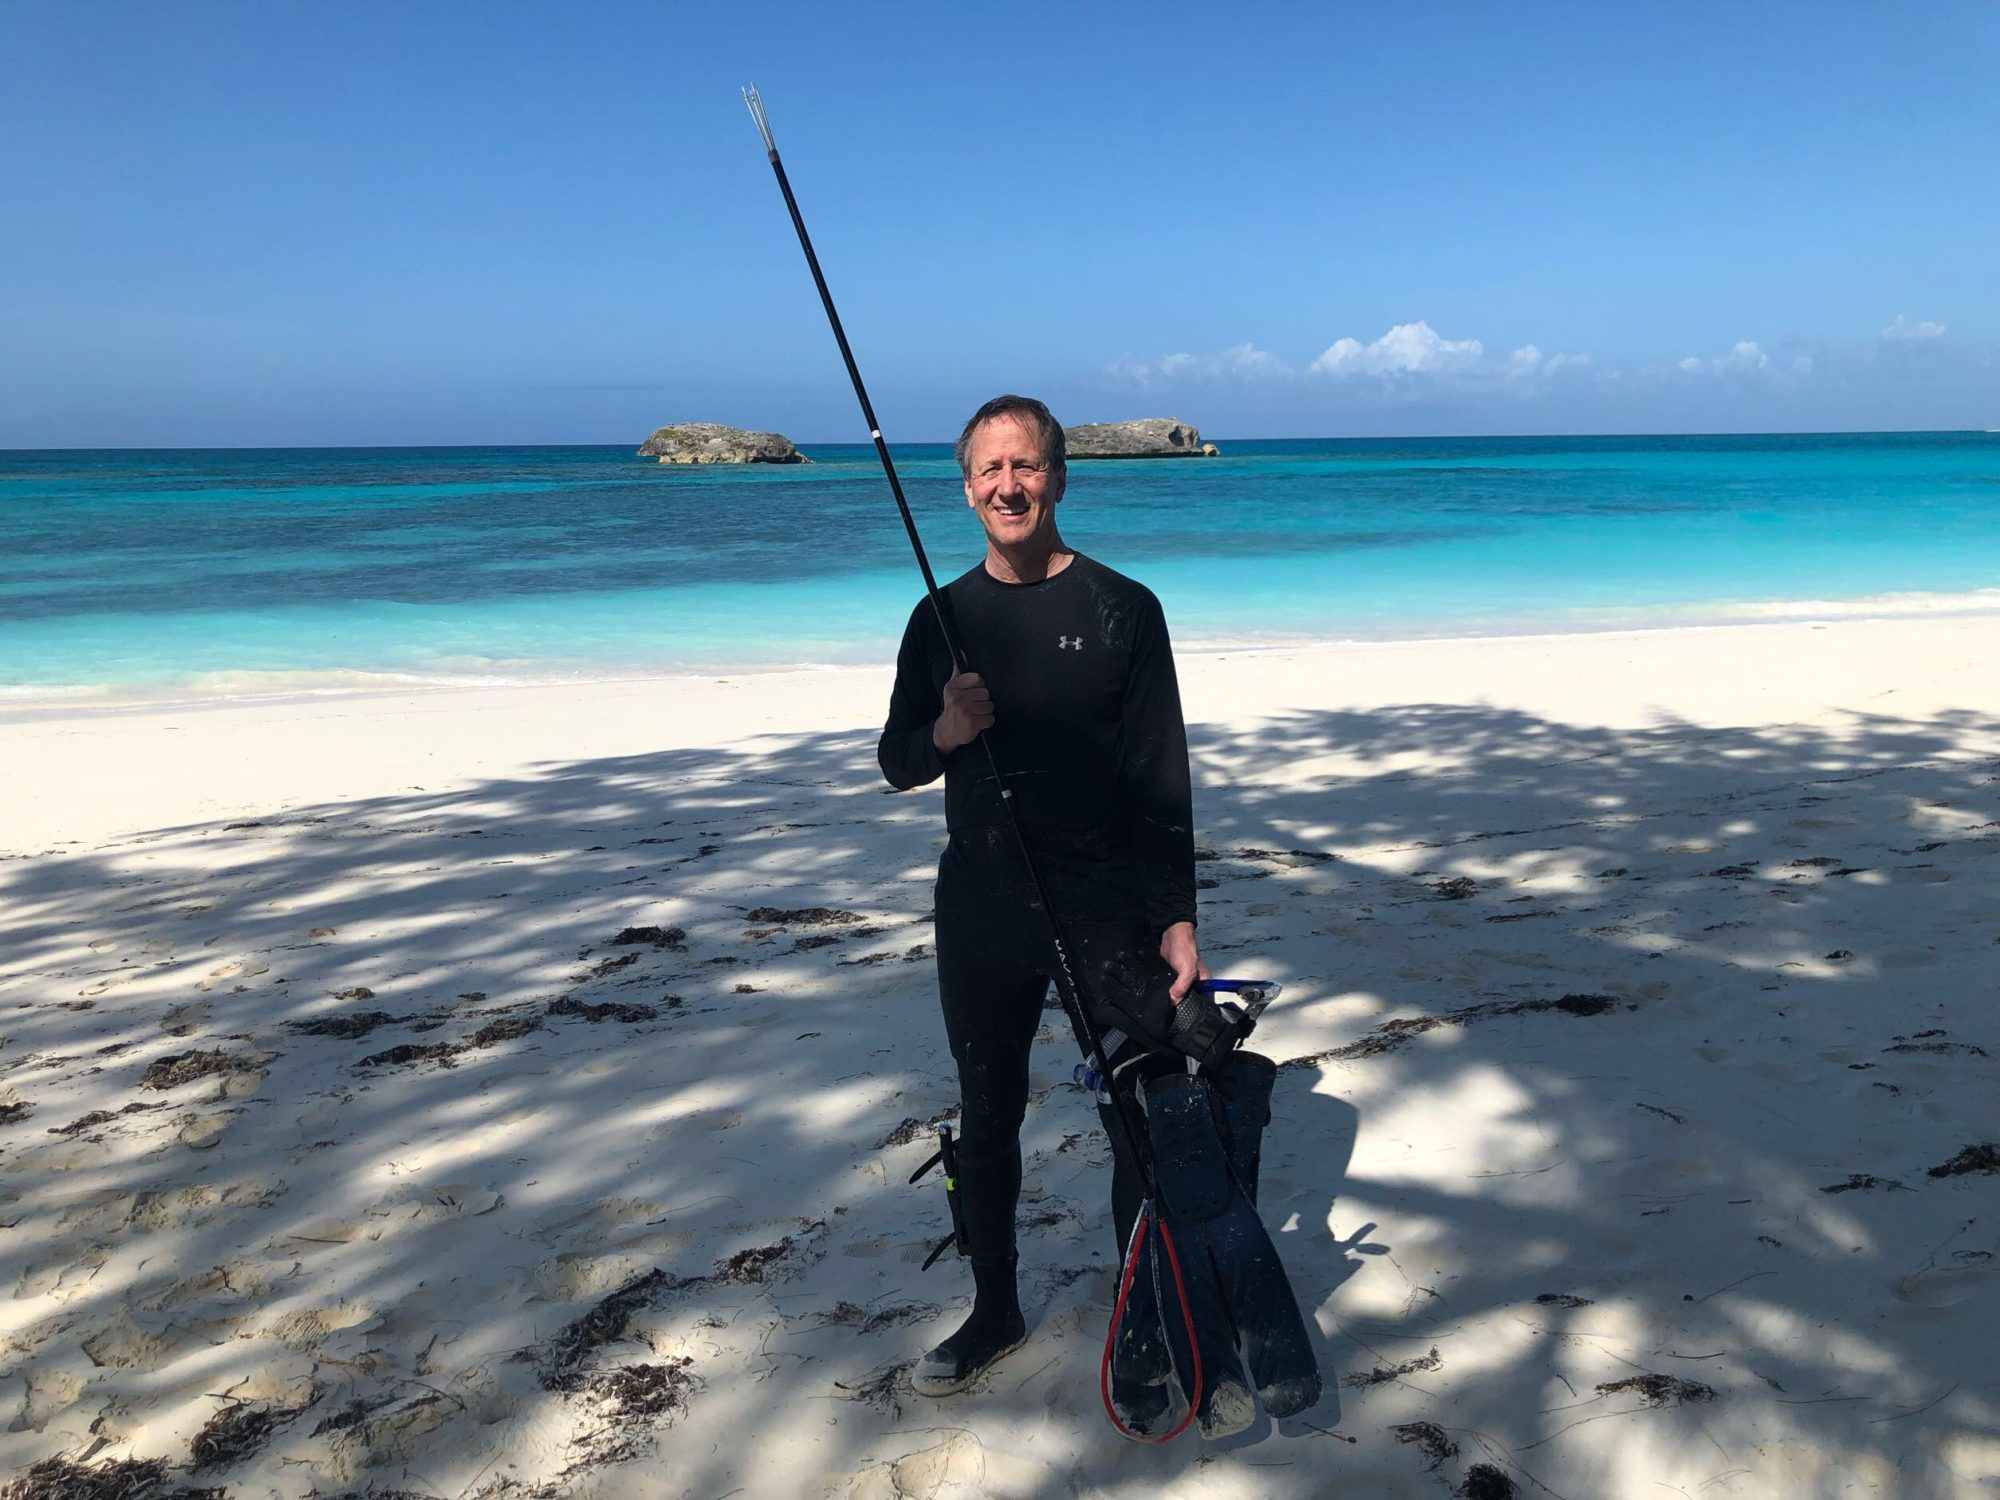 These three executives traded an all-inclusive resort for spearfishing for their food on desert islands, learn why they did it below.